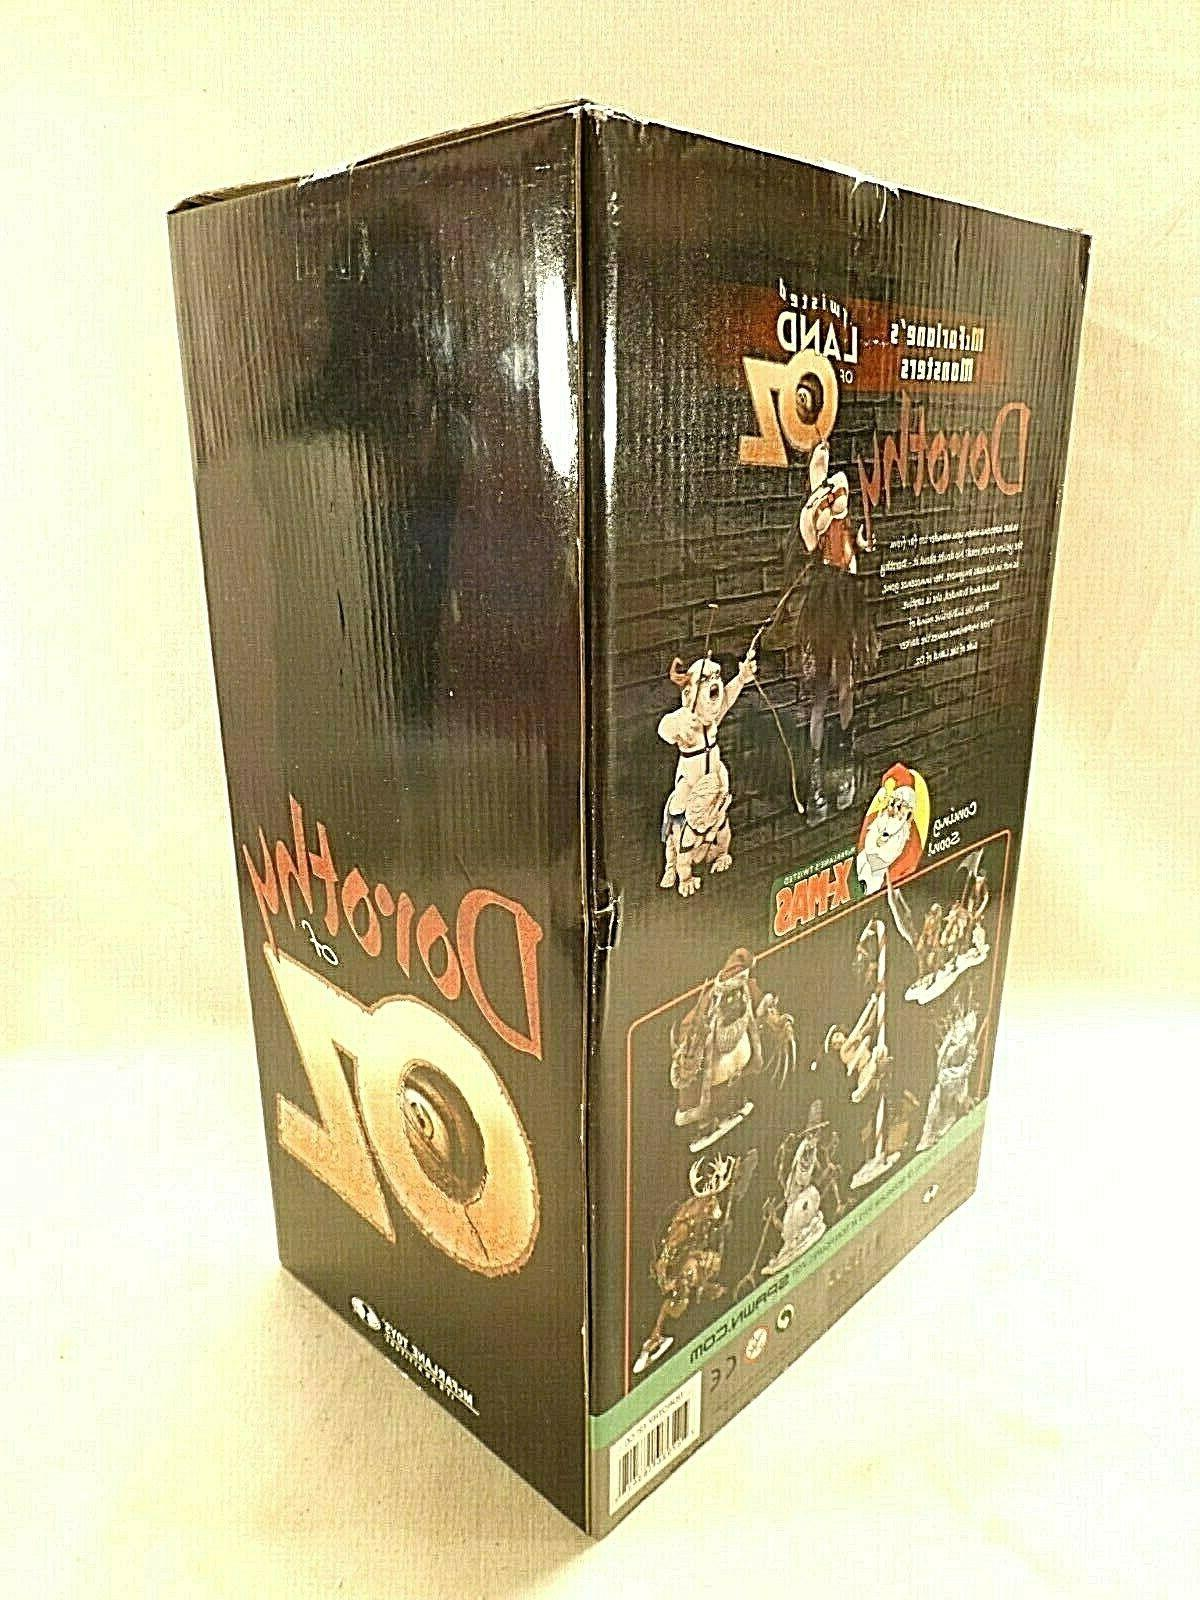 McFarlane Toys of Oz Boxed Action 2007